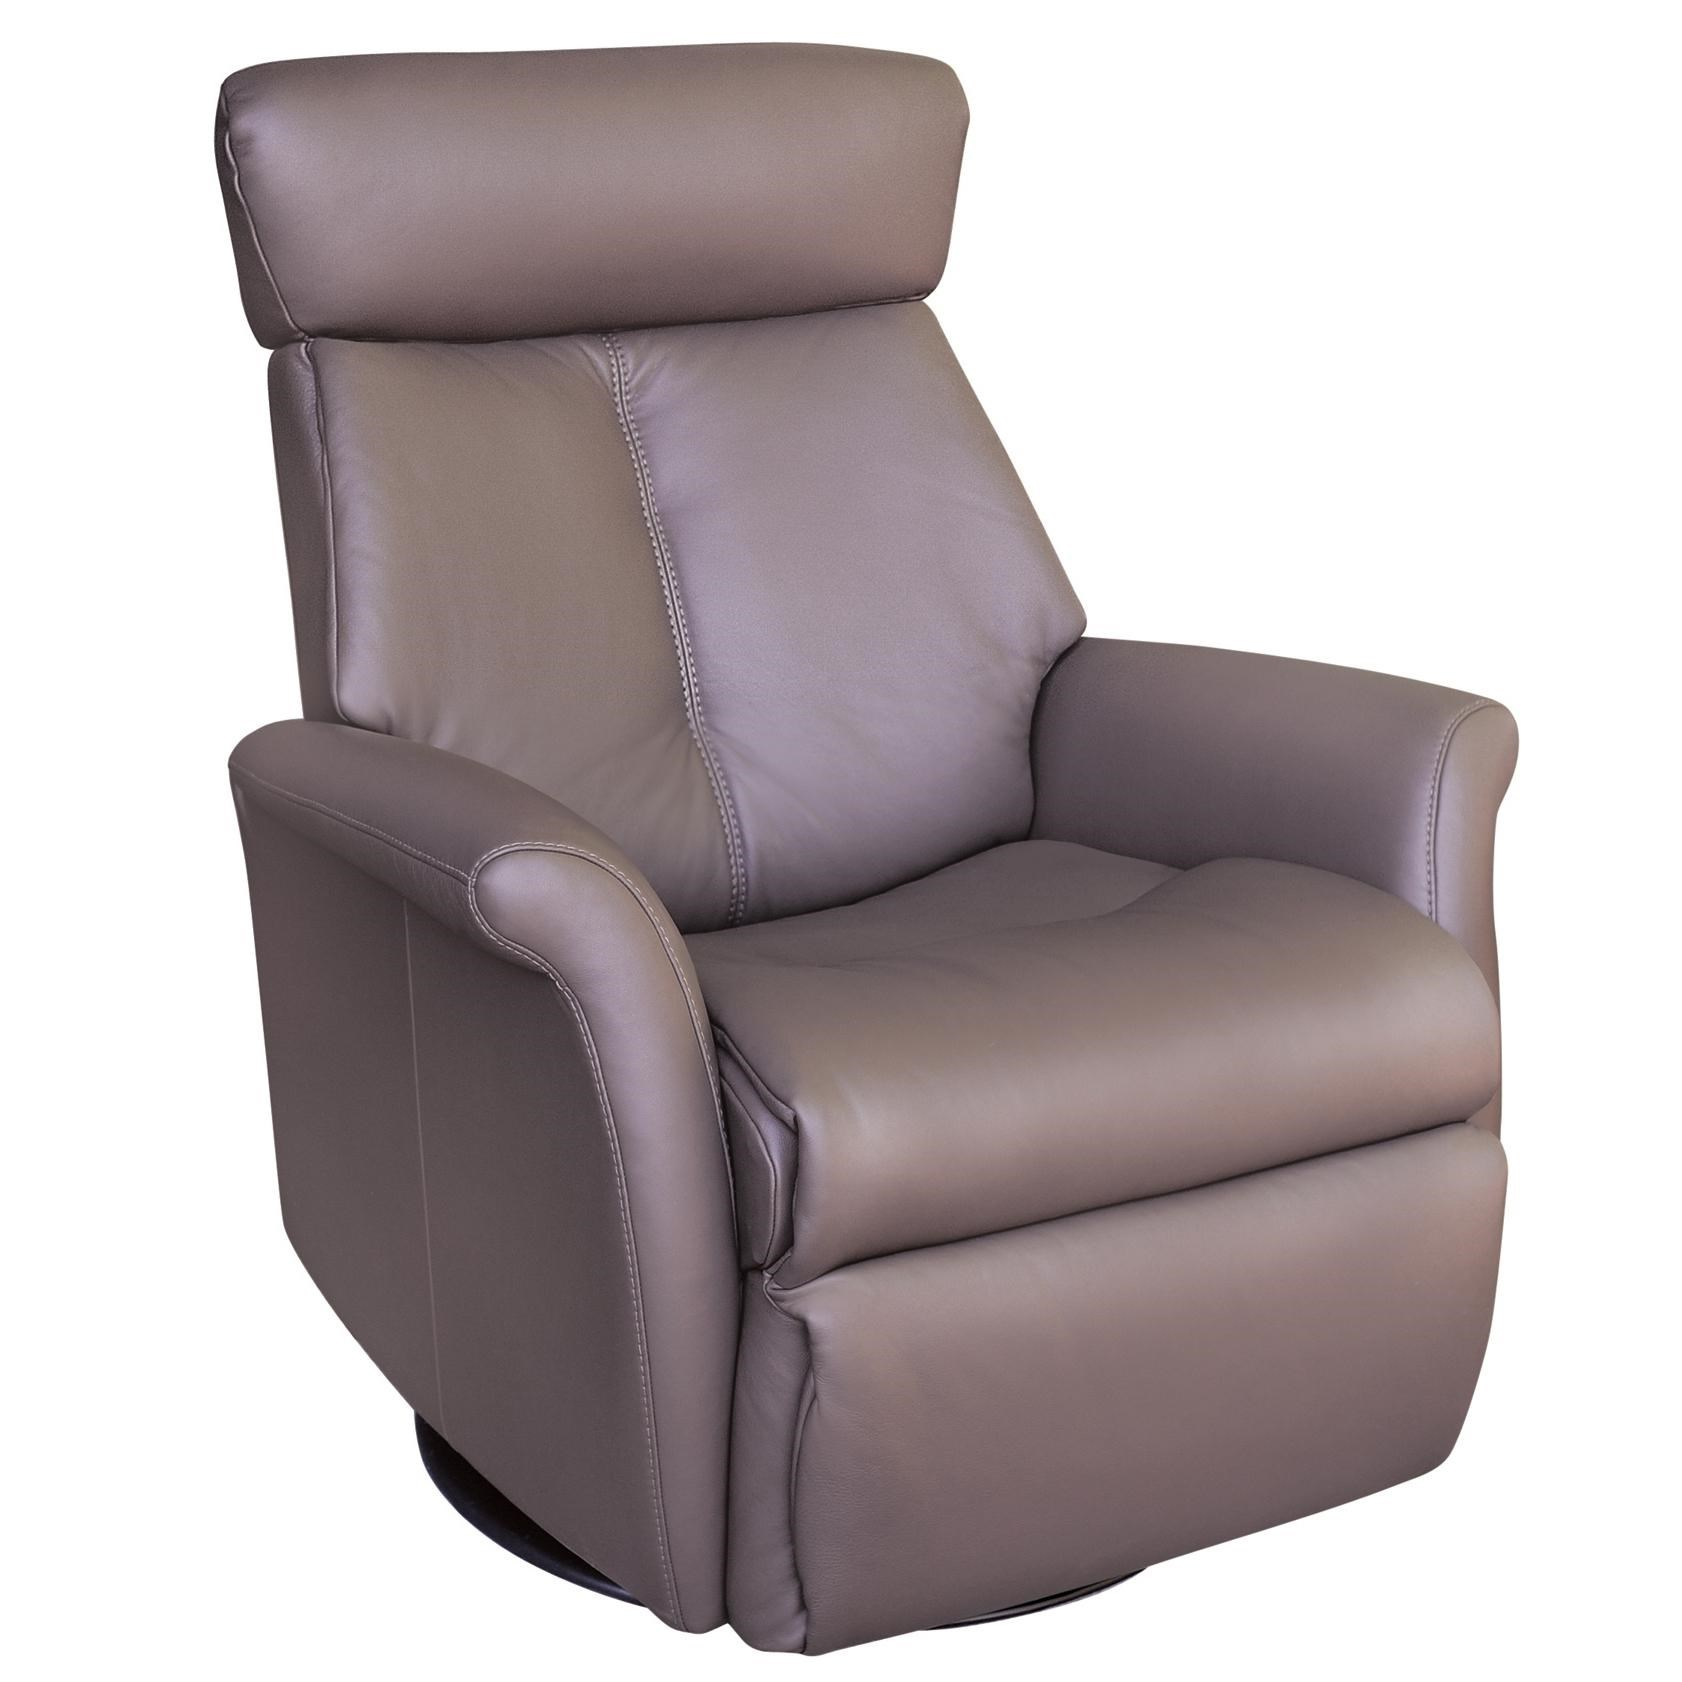 Divani Relaxer Chair Img Norway Recliners Modern Bella Wing Recliner Relaxer With